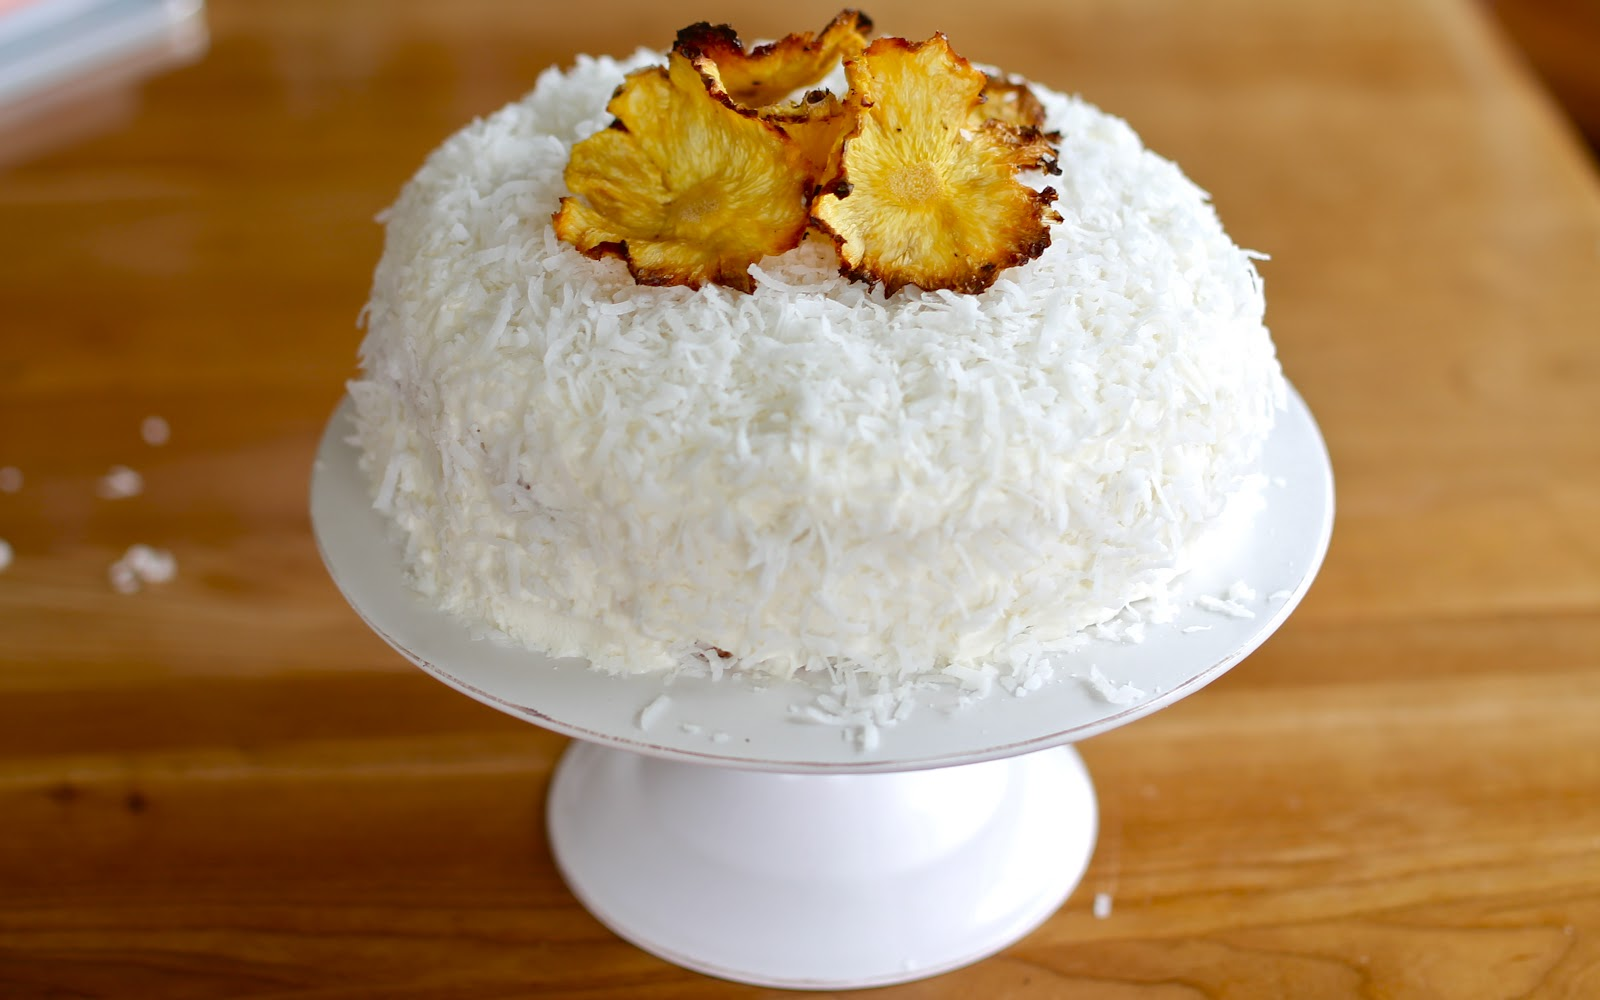 ... this cake. I just have one thing to say: PIÑA COLADAS ROCK MY LIFE